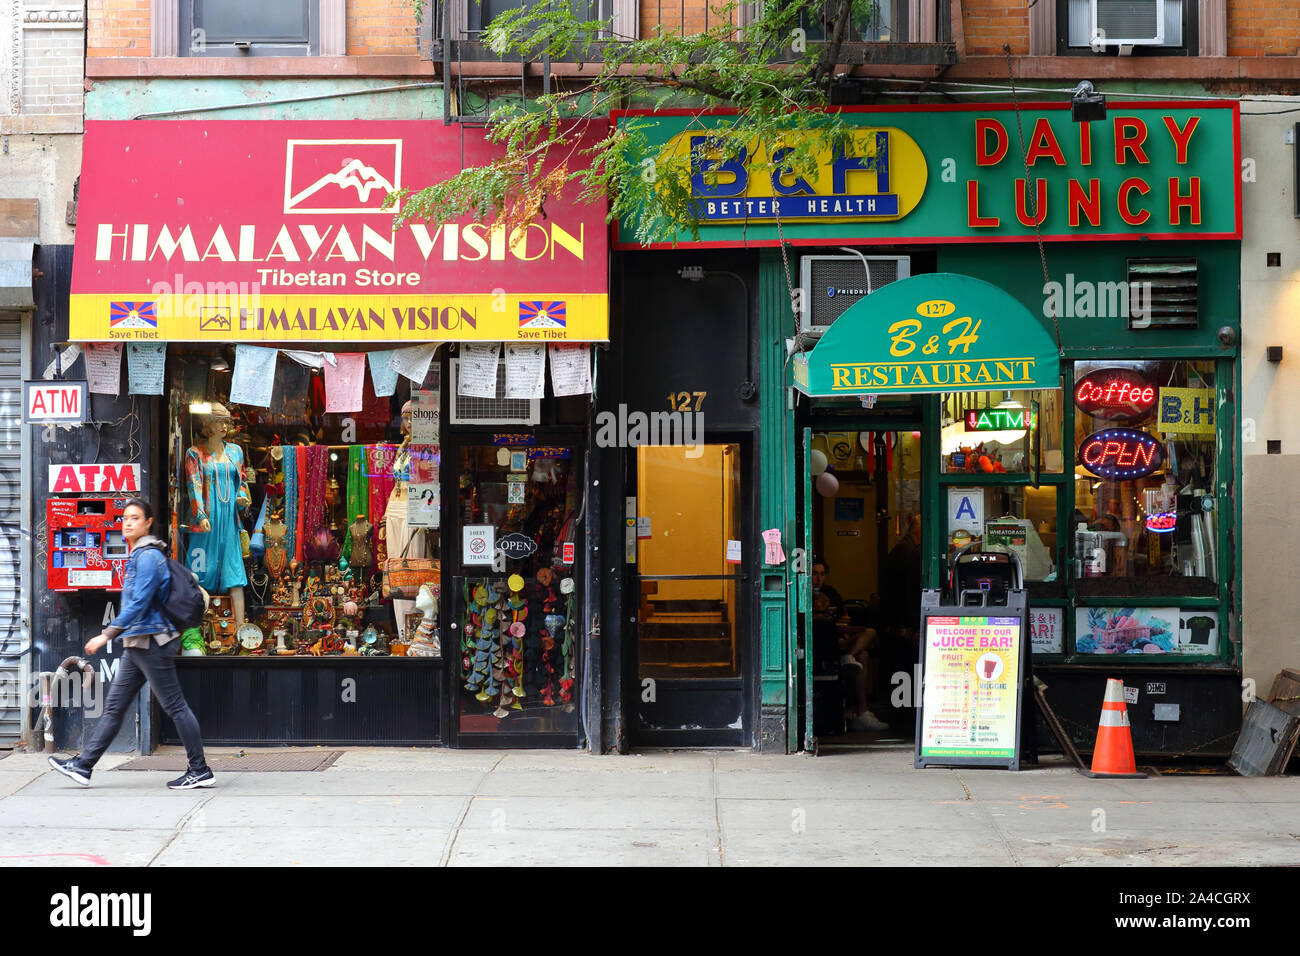 himalayan-vision-bh-dairy-127-2nd-avenue-new-york-ny-exterior-storefronts-in-the-east-village-of-manhattan-2A4CGRX.jpg